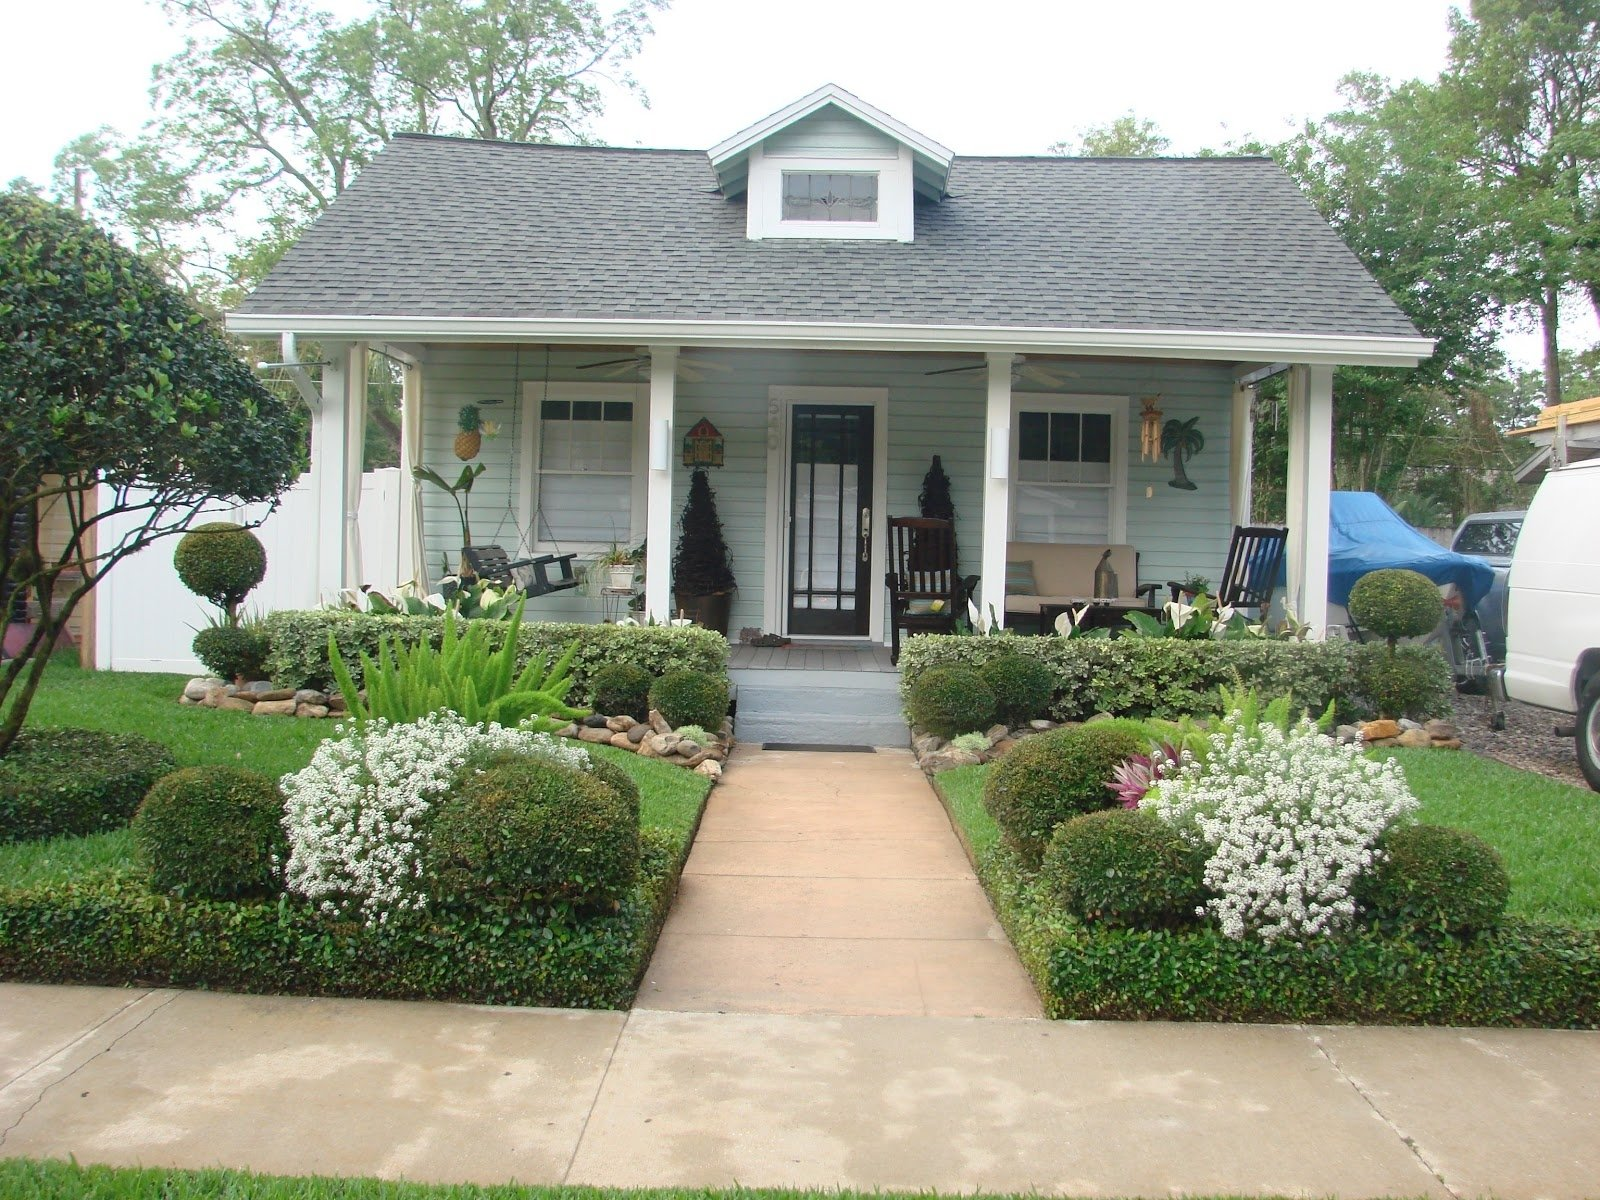 10 Fantastic Cottage Landscaping Ideas For Front Yard front yard cottage landscaping impressive pictures inspirations